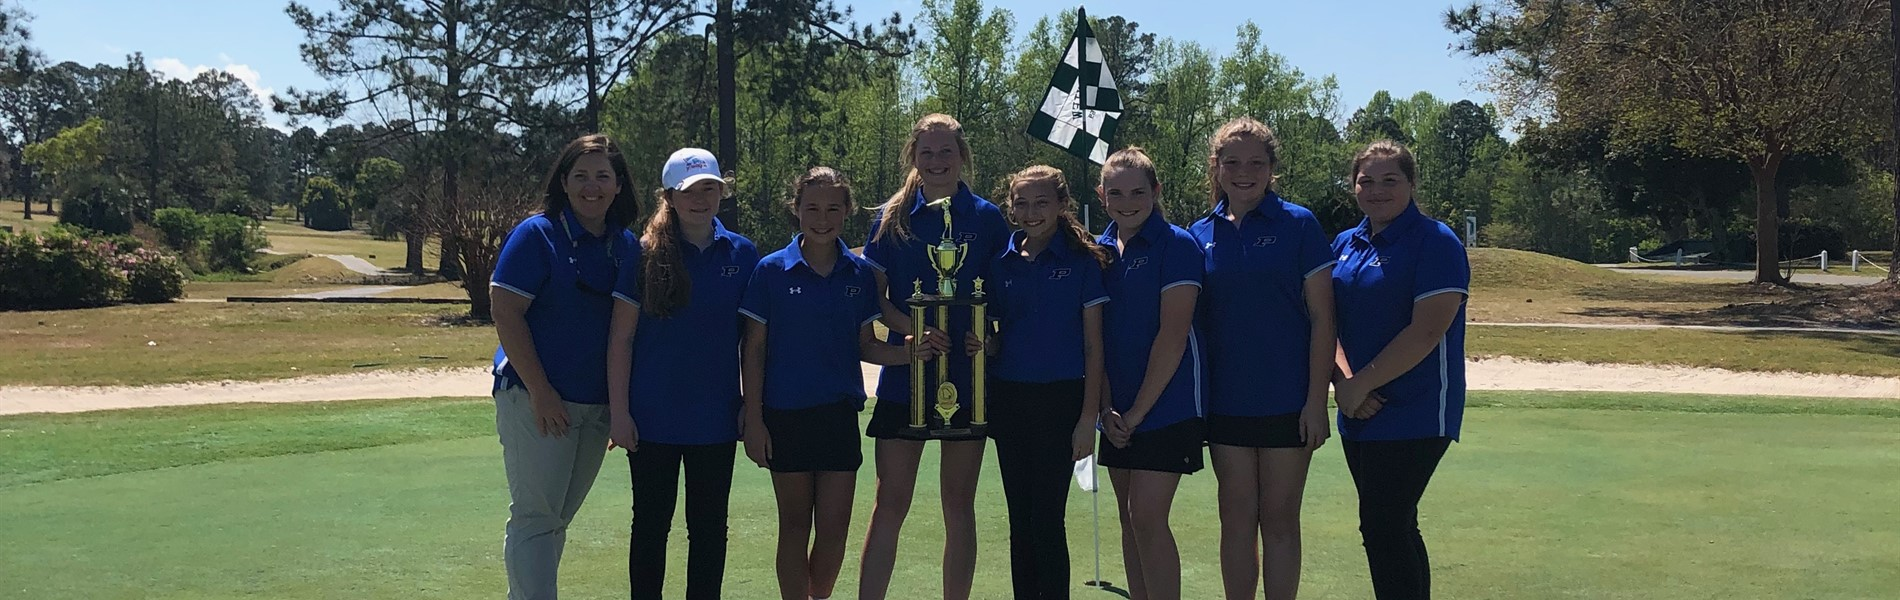 2018-2019 Girls Golf Conference CHAMPS